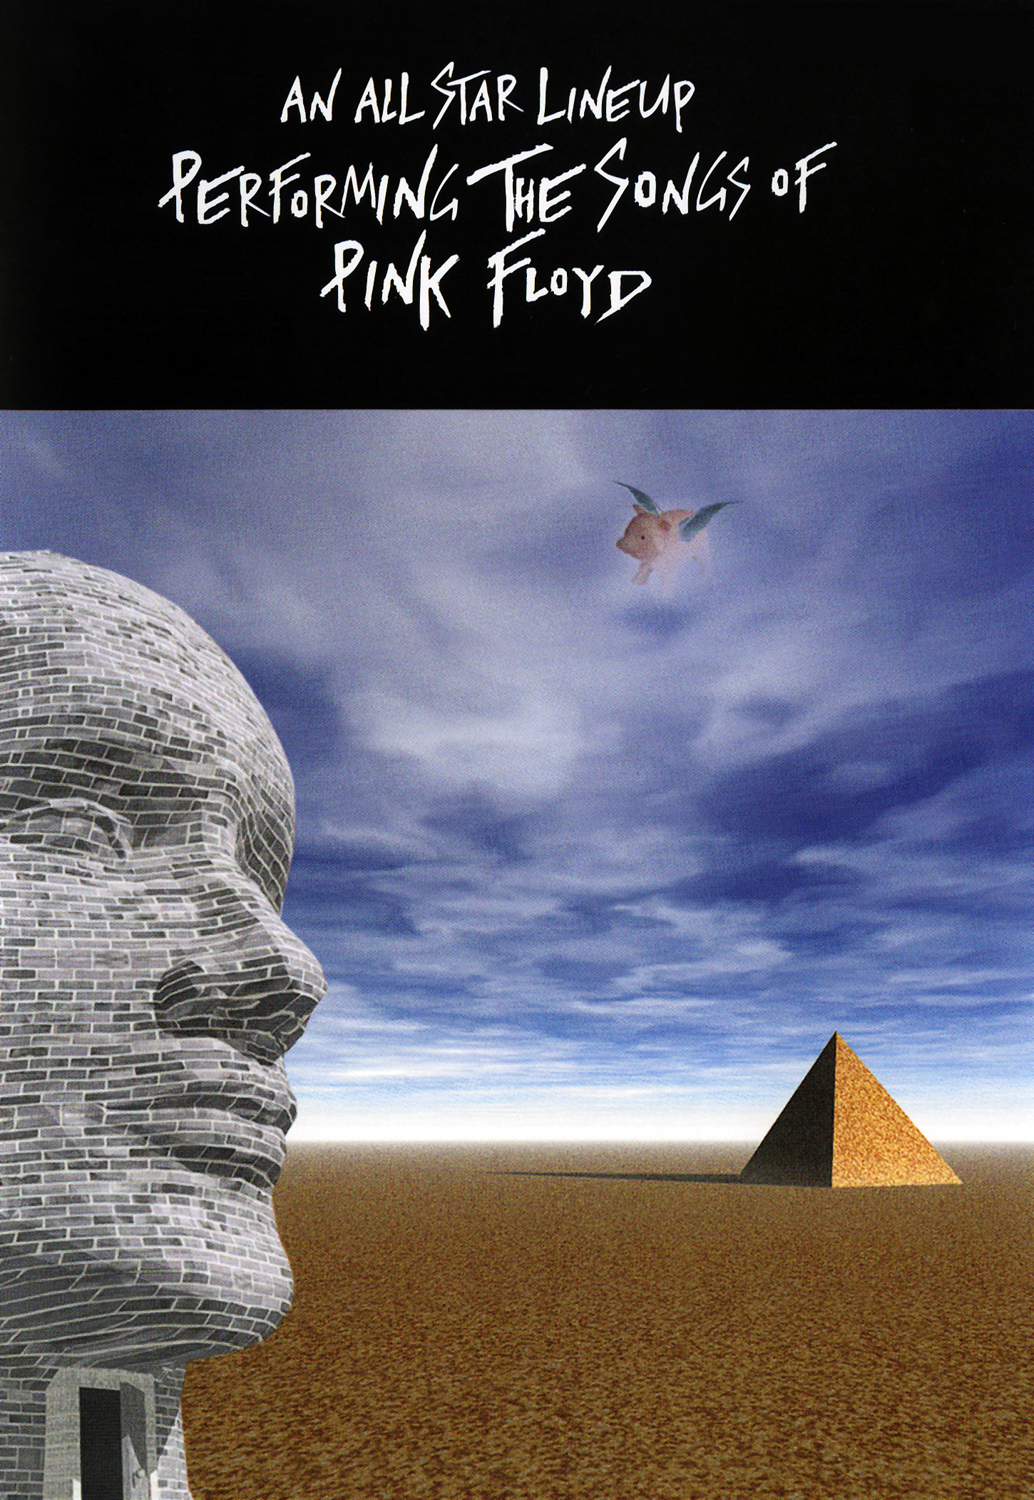 An All Star Lineup Performing the Songs of Pink Floyd